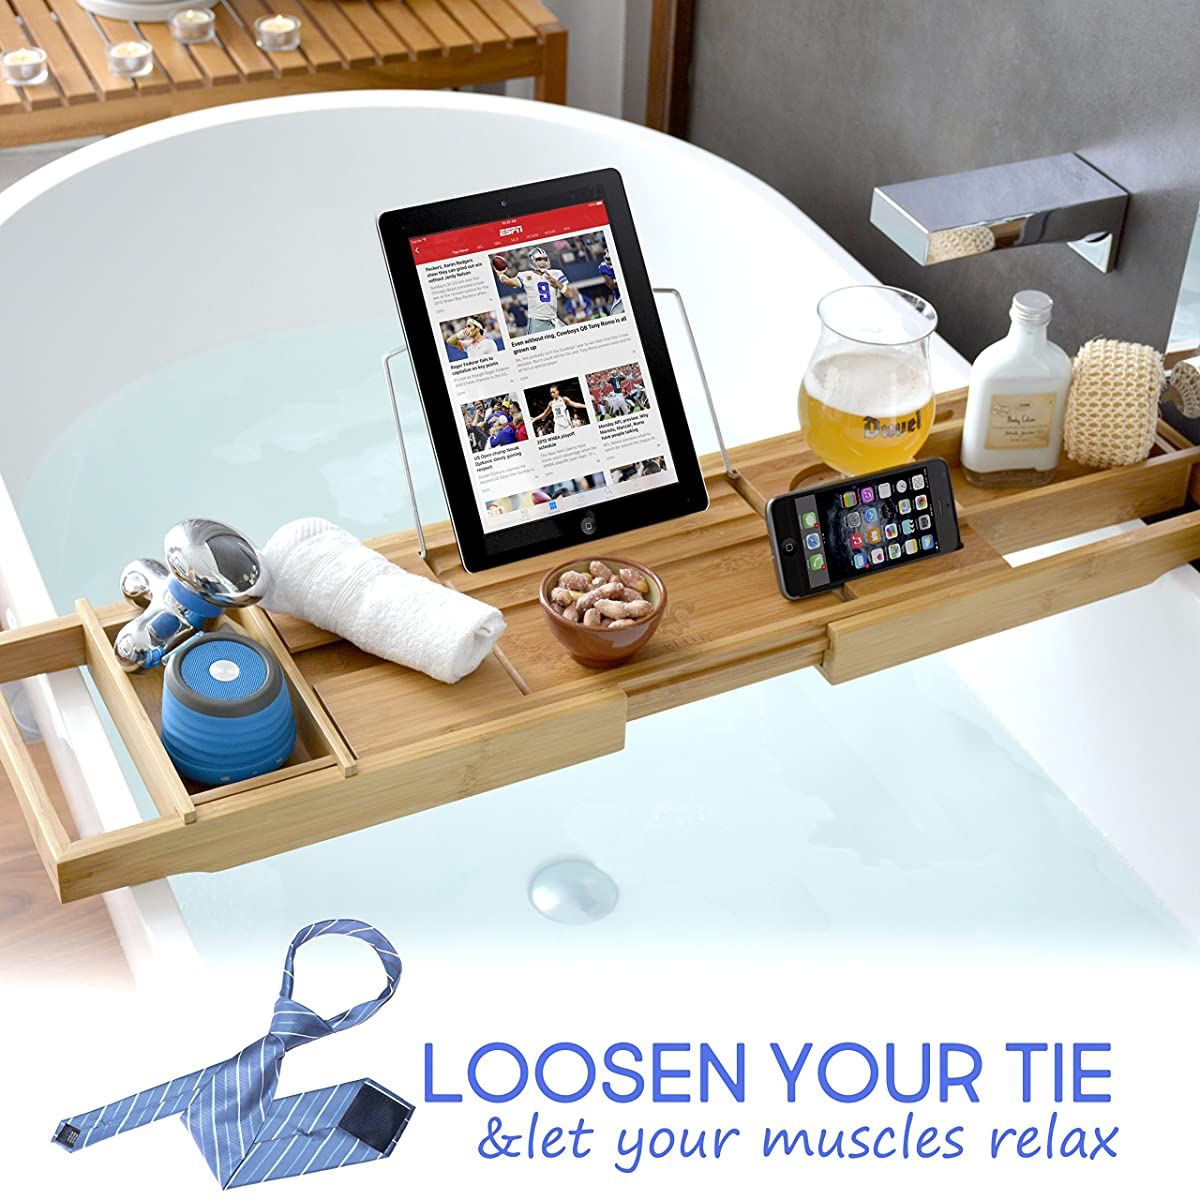 ELITE CREATIONS Bathtub Caddy & Laptop Bed Desk – 2 In 1 Innovative Design Transforms Our 100% Bamboo Bathtub Tray To Bed Tray – For The Ultimate Pampering Experience